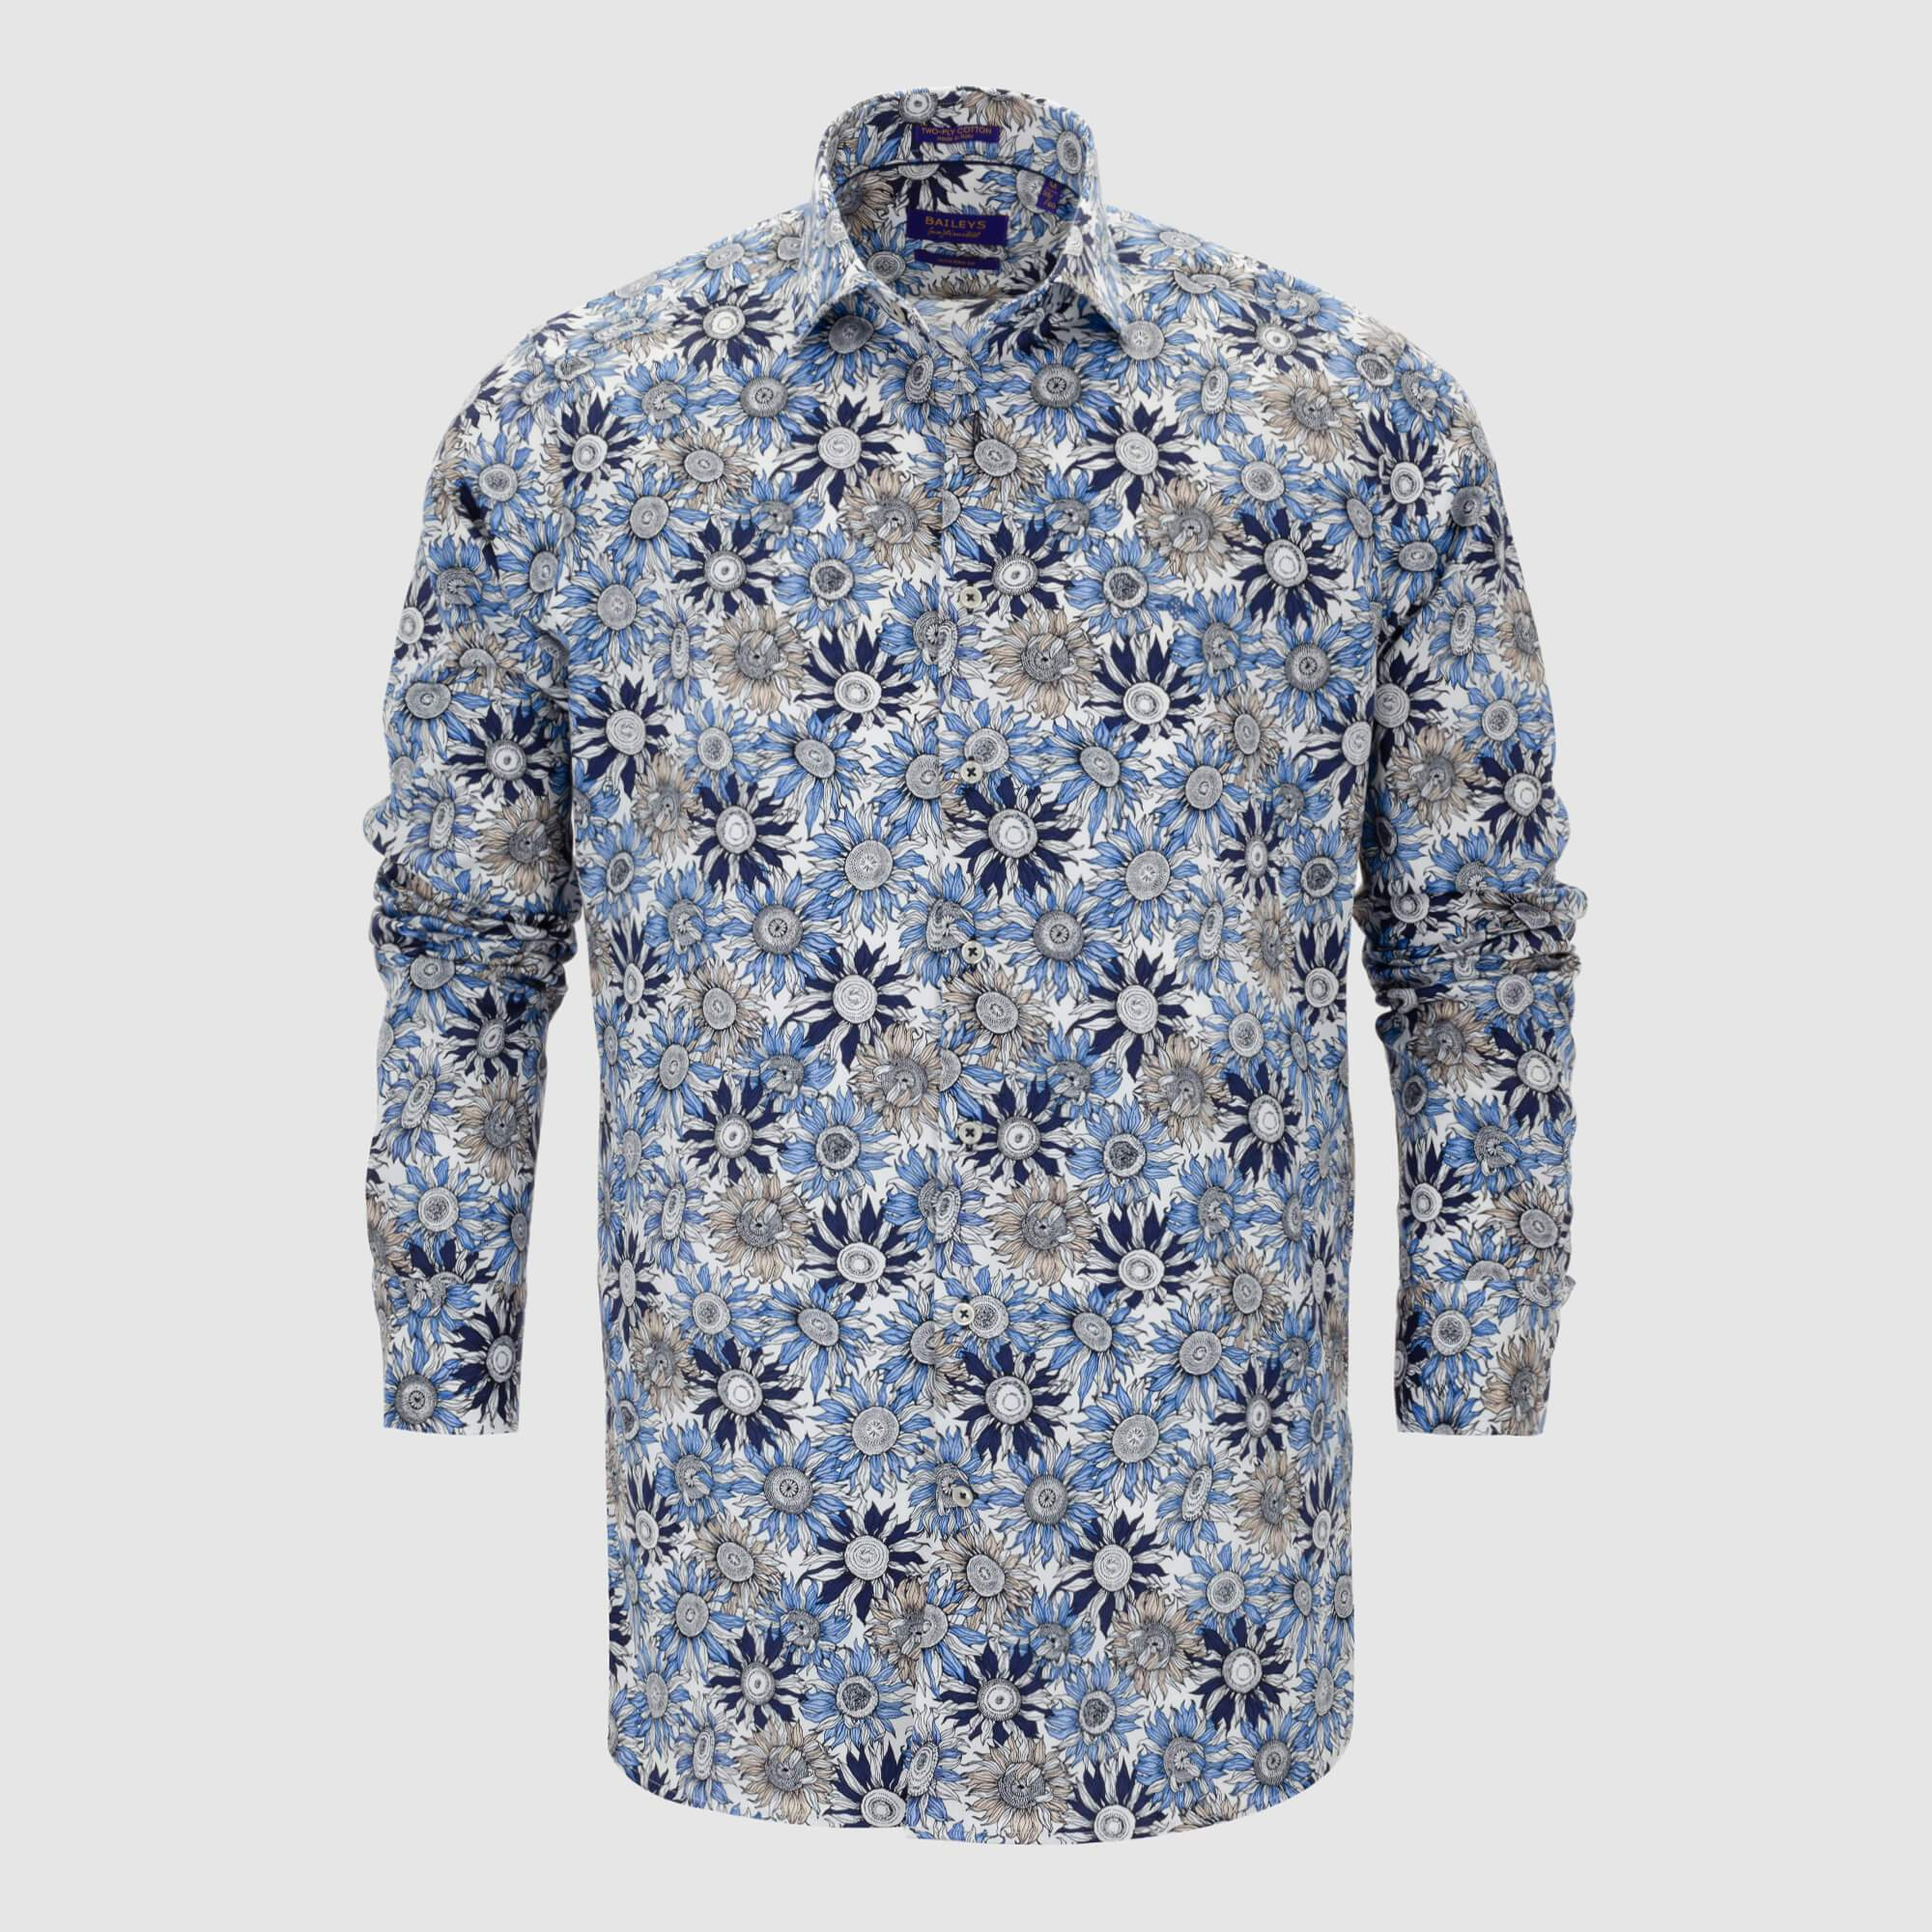 Camisa estampada diseño exclusivo slim fit 107855